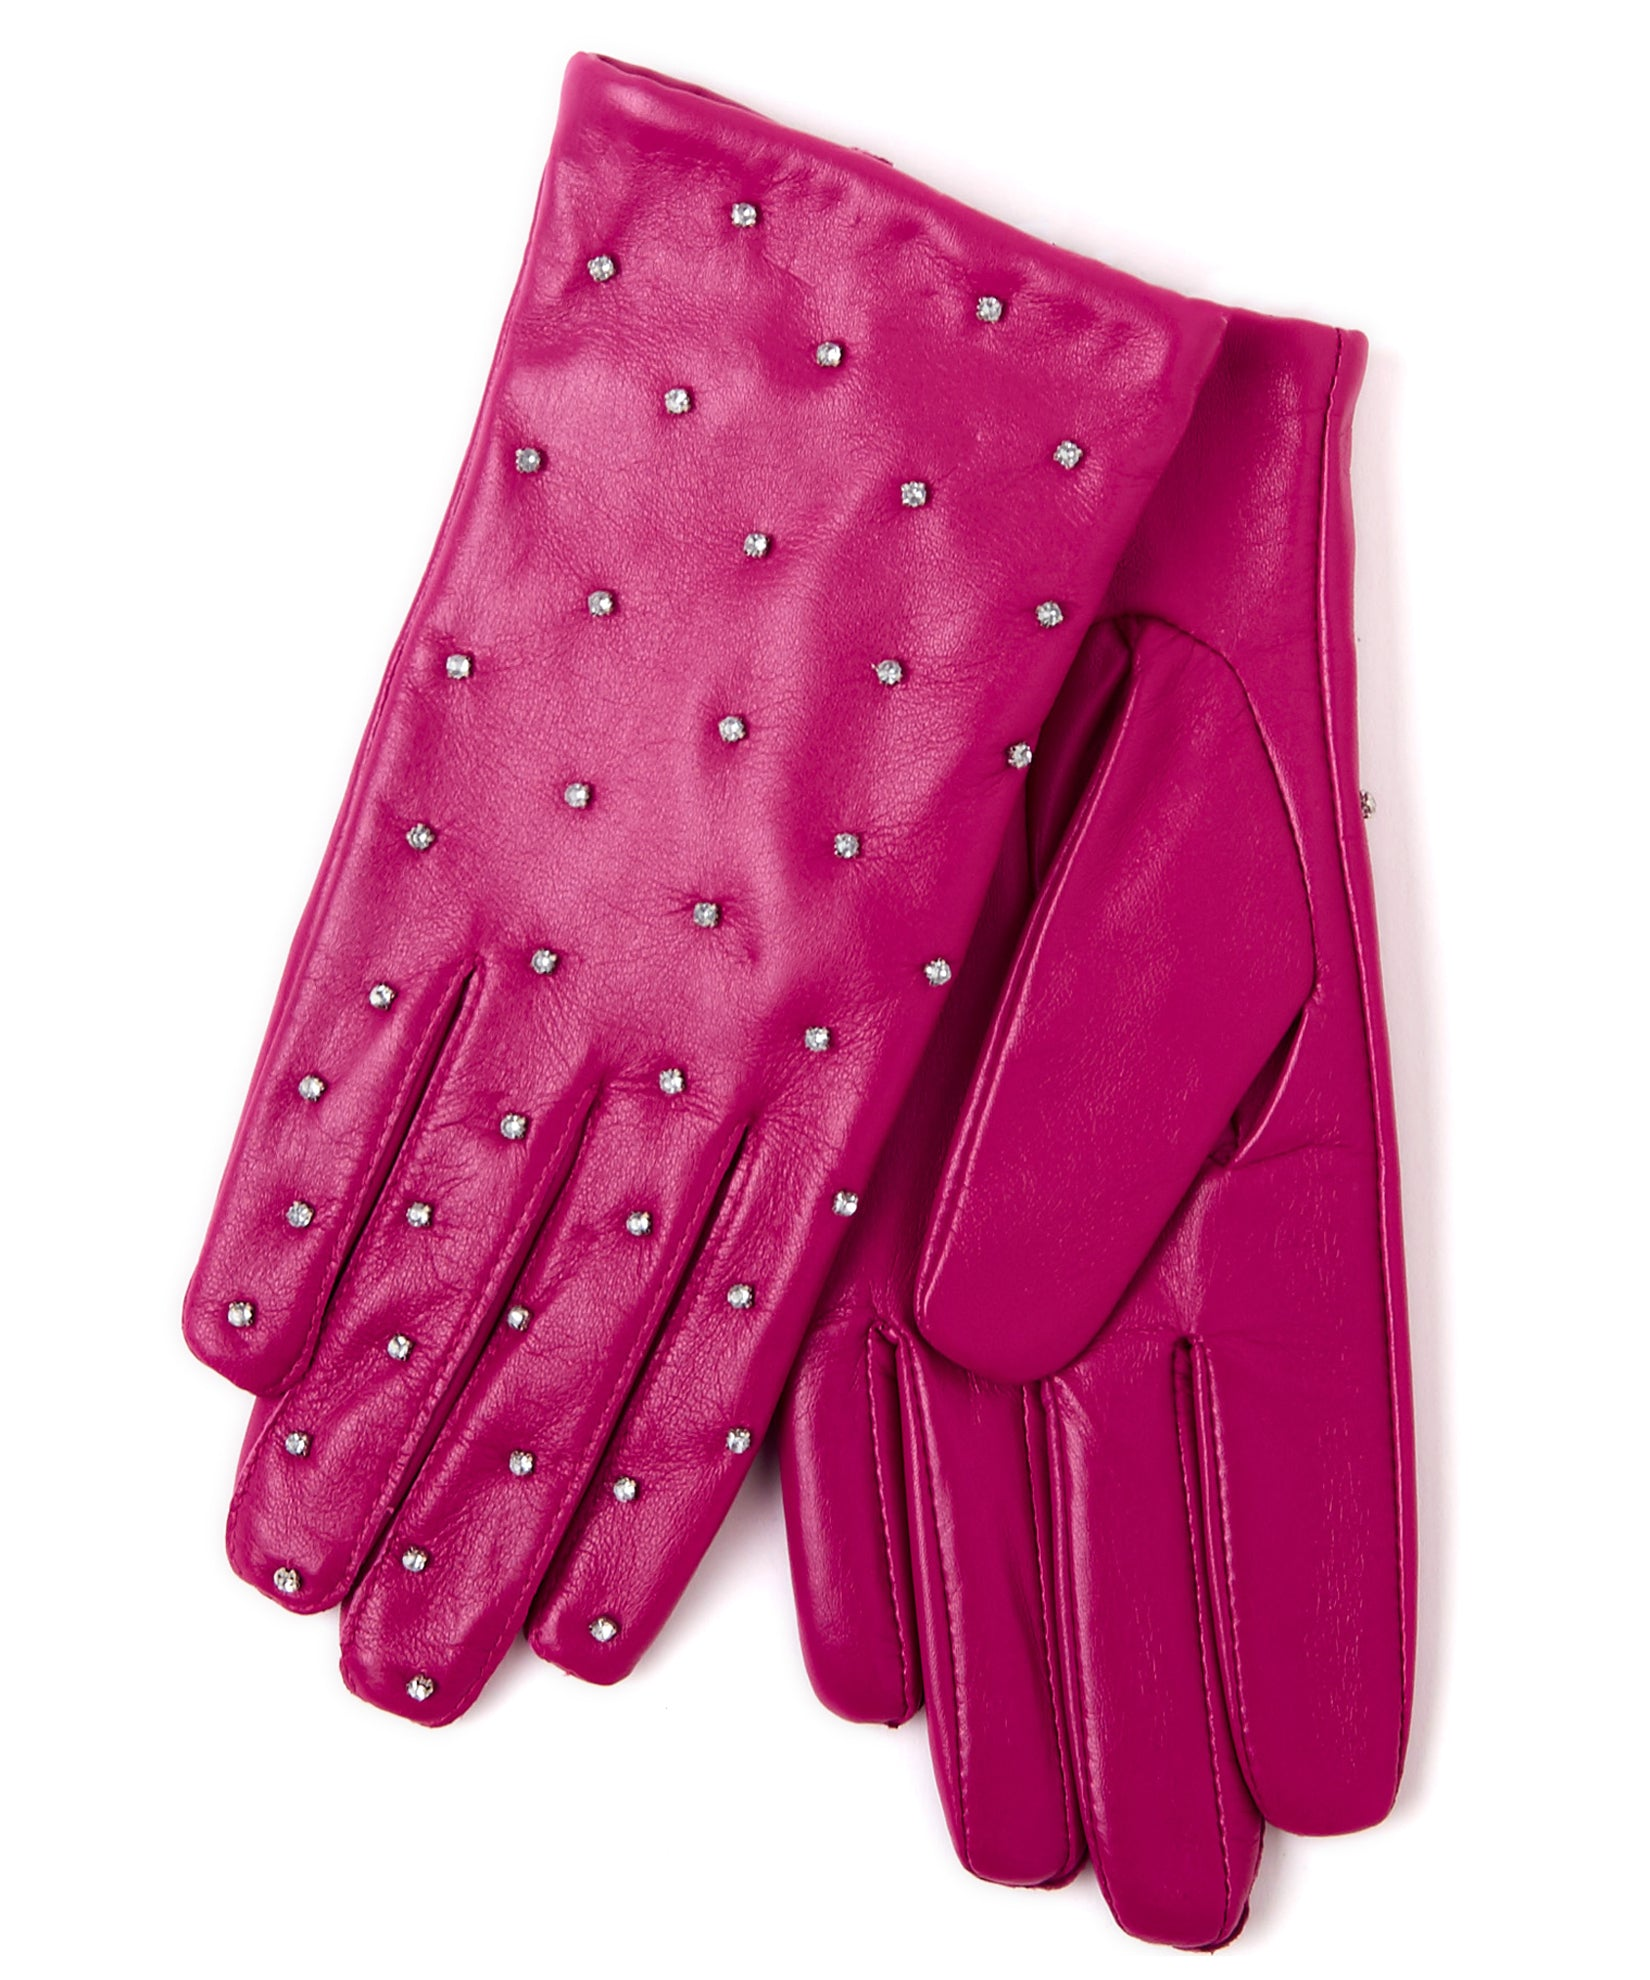 Indian Rose - Rani Rhinestone Glove